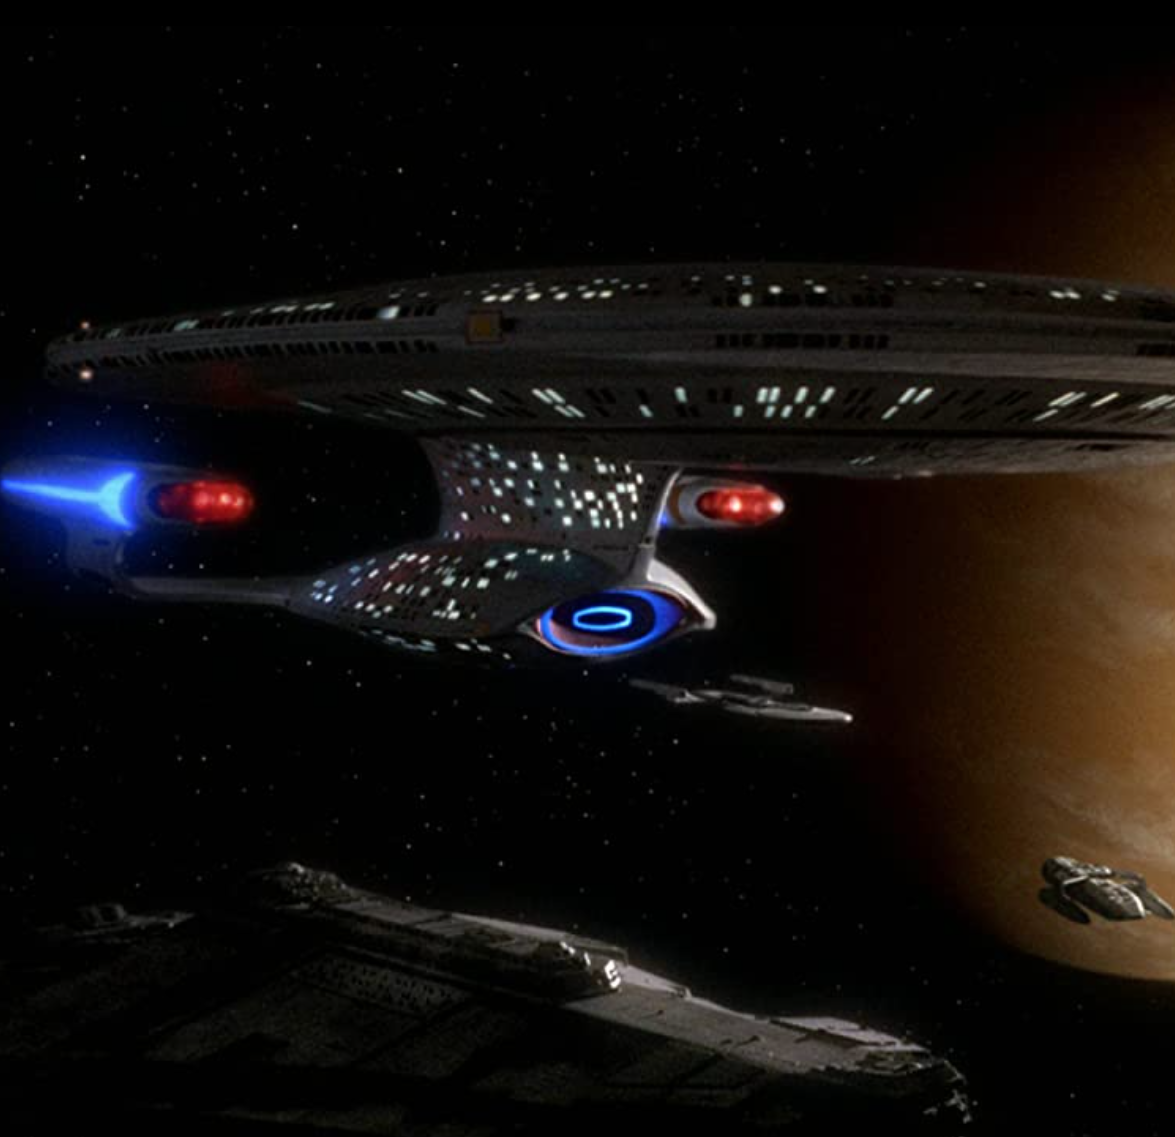 Screen Shot 2021 03 09 at 10.06.57 am e1615284483182 30 Intergalactic Facts About Star Trek: The Next Generation